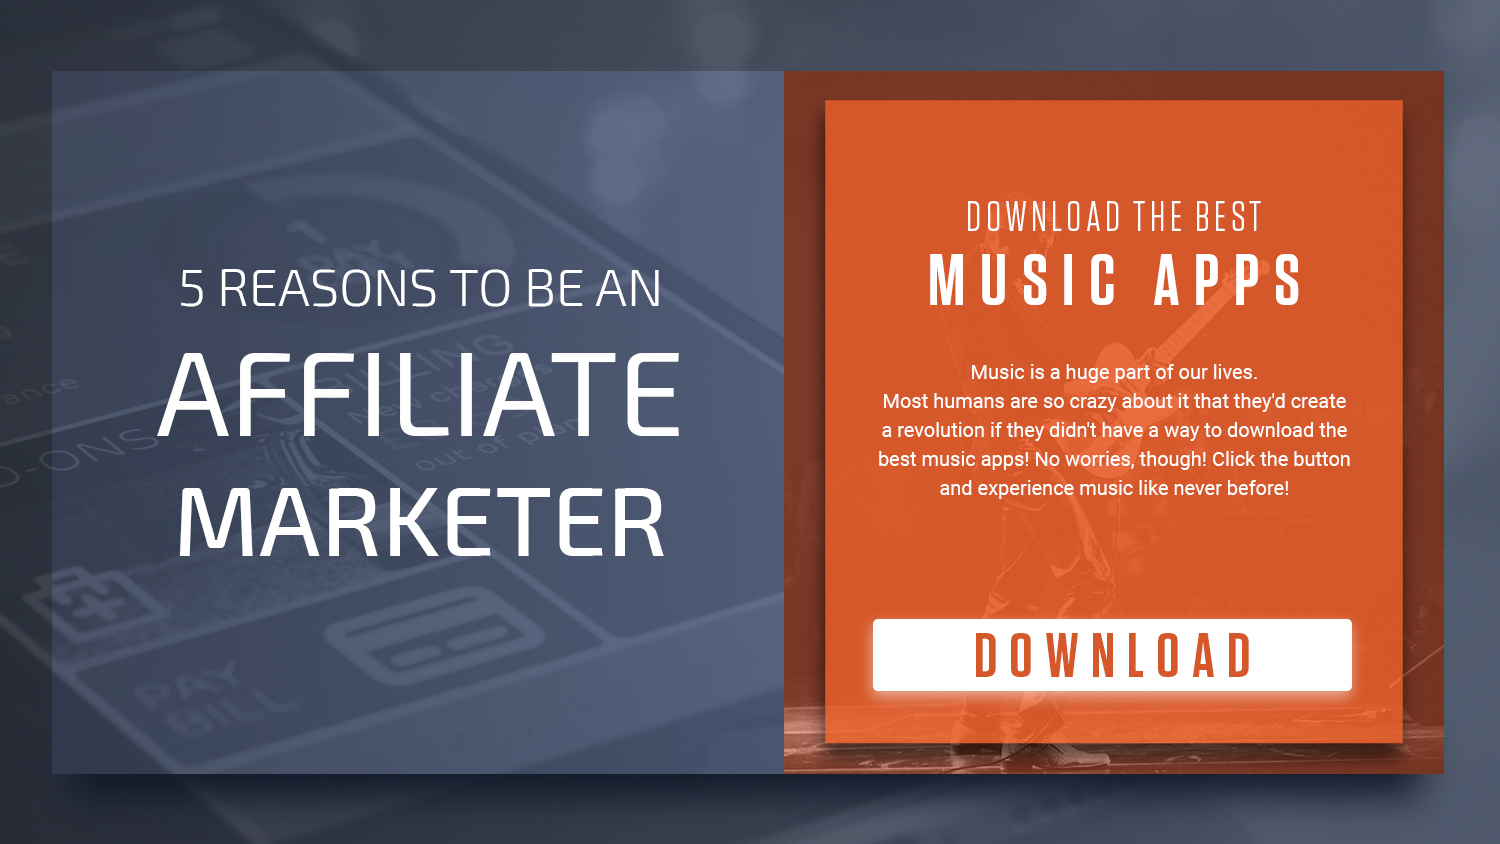 5 reasons to an start affiliate marketing business in 2017